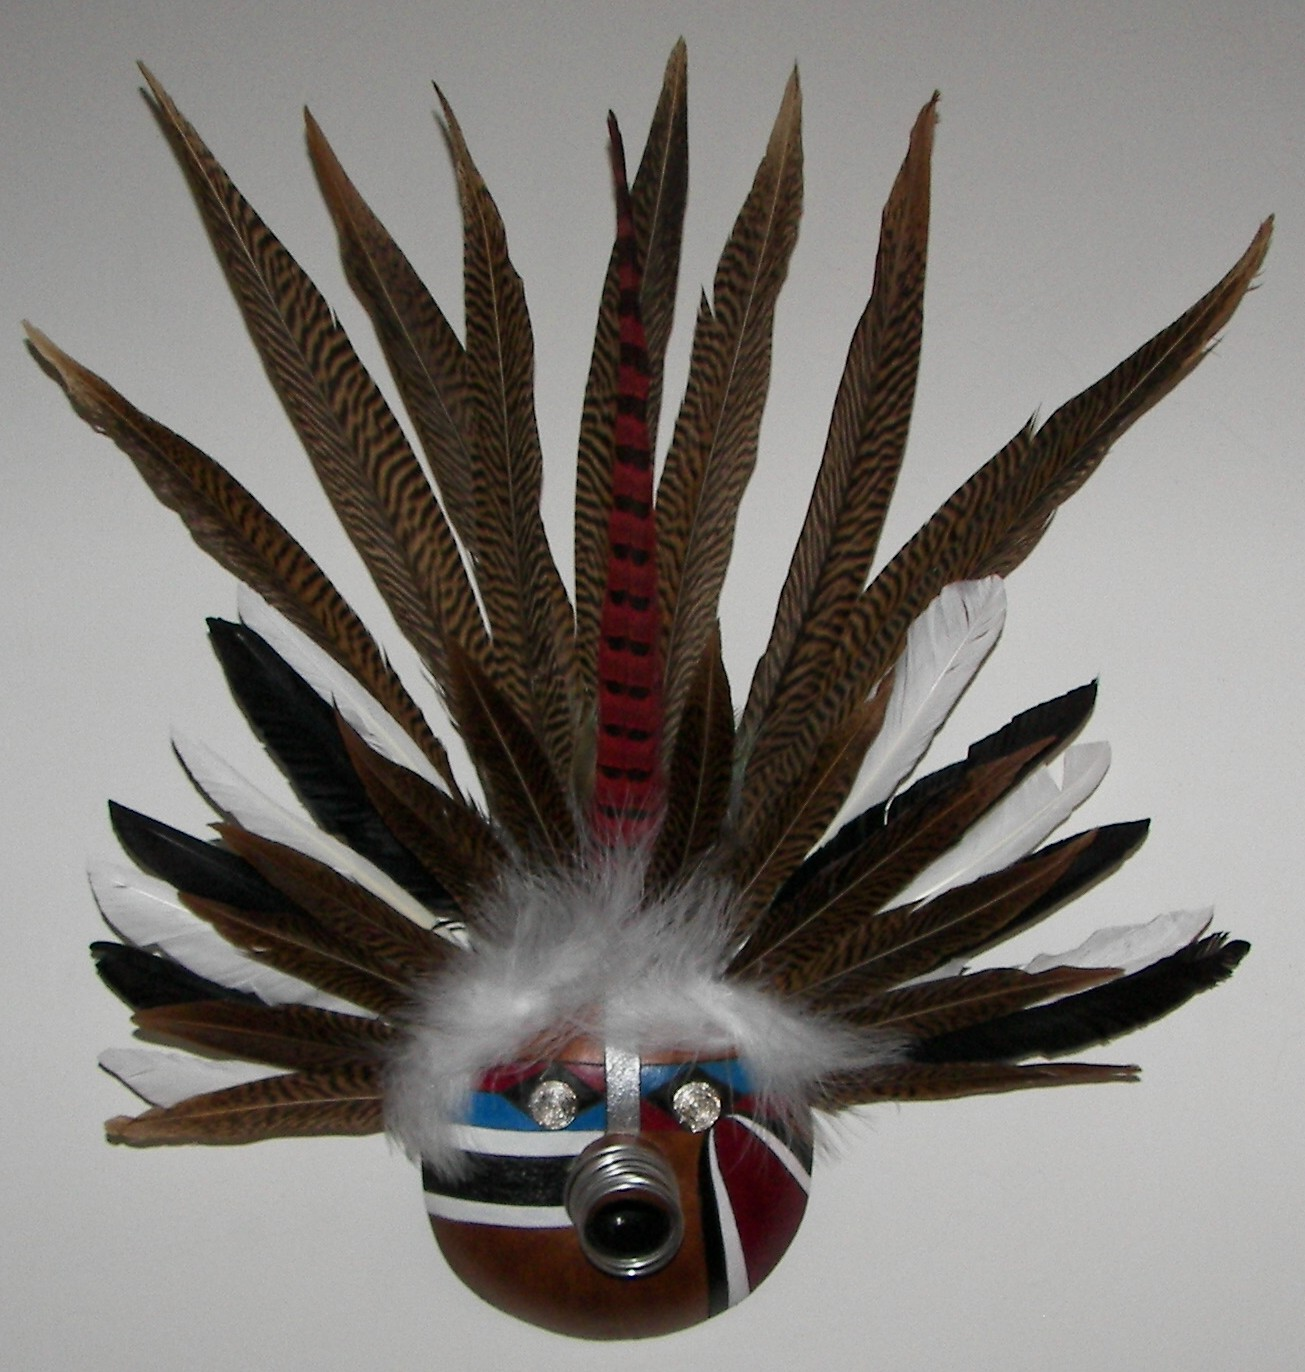 gourd-mask-white-and-pheasant-feathers-silver-eyes